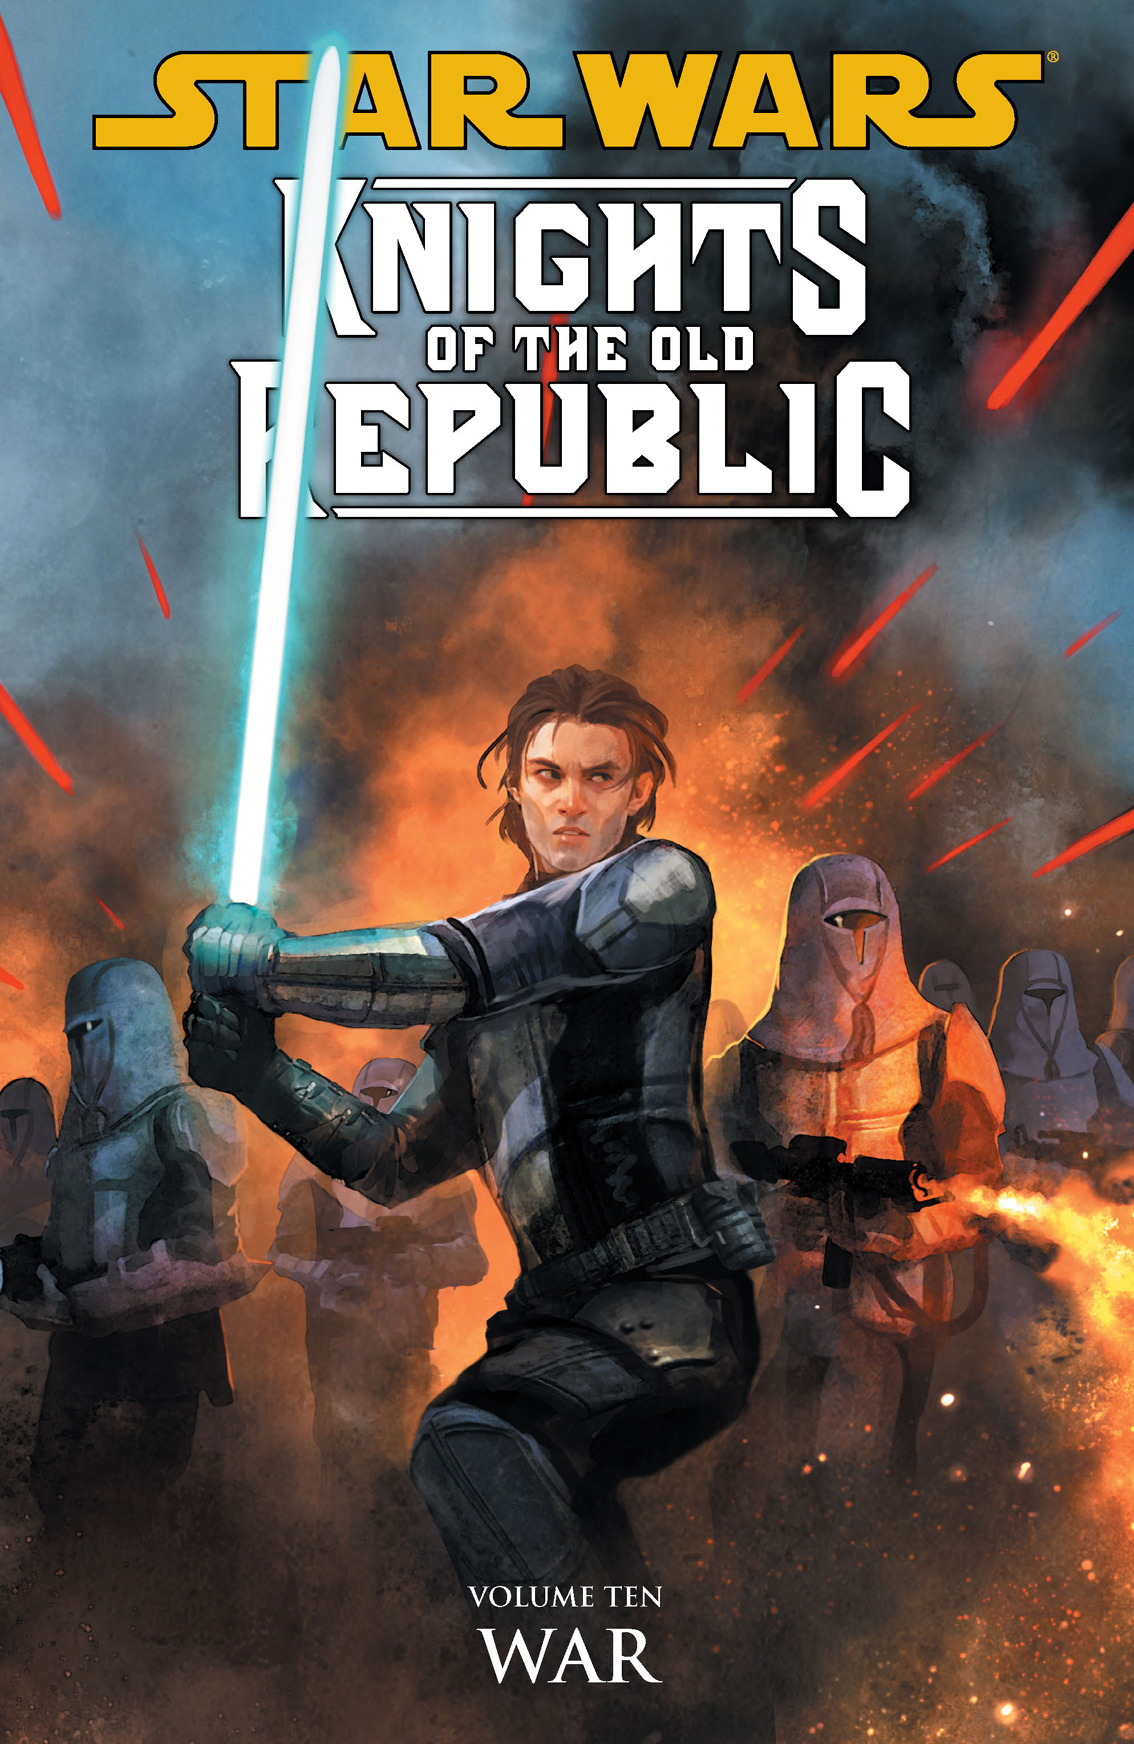 Star Wars: Knights of the Old Republic Volume 10War